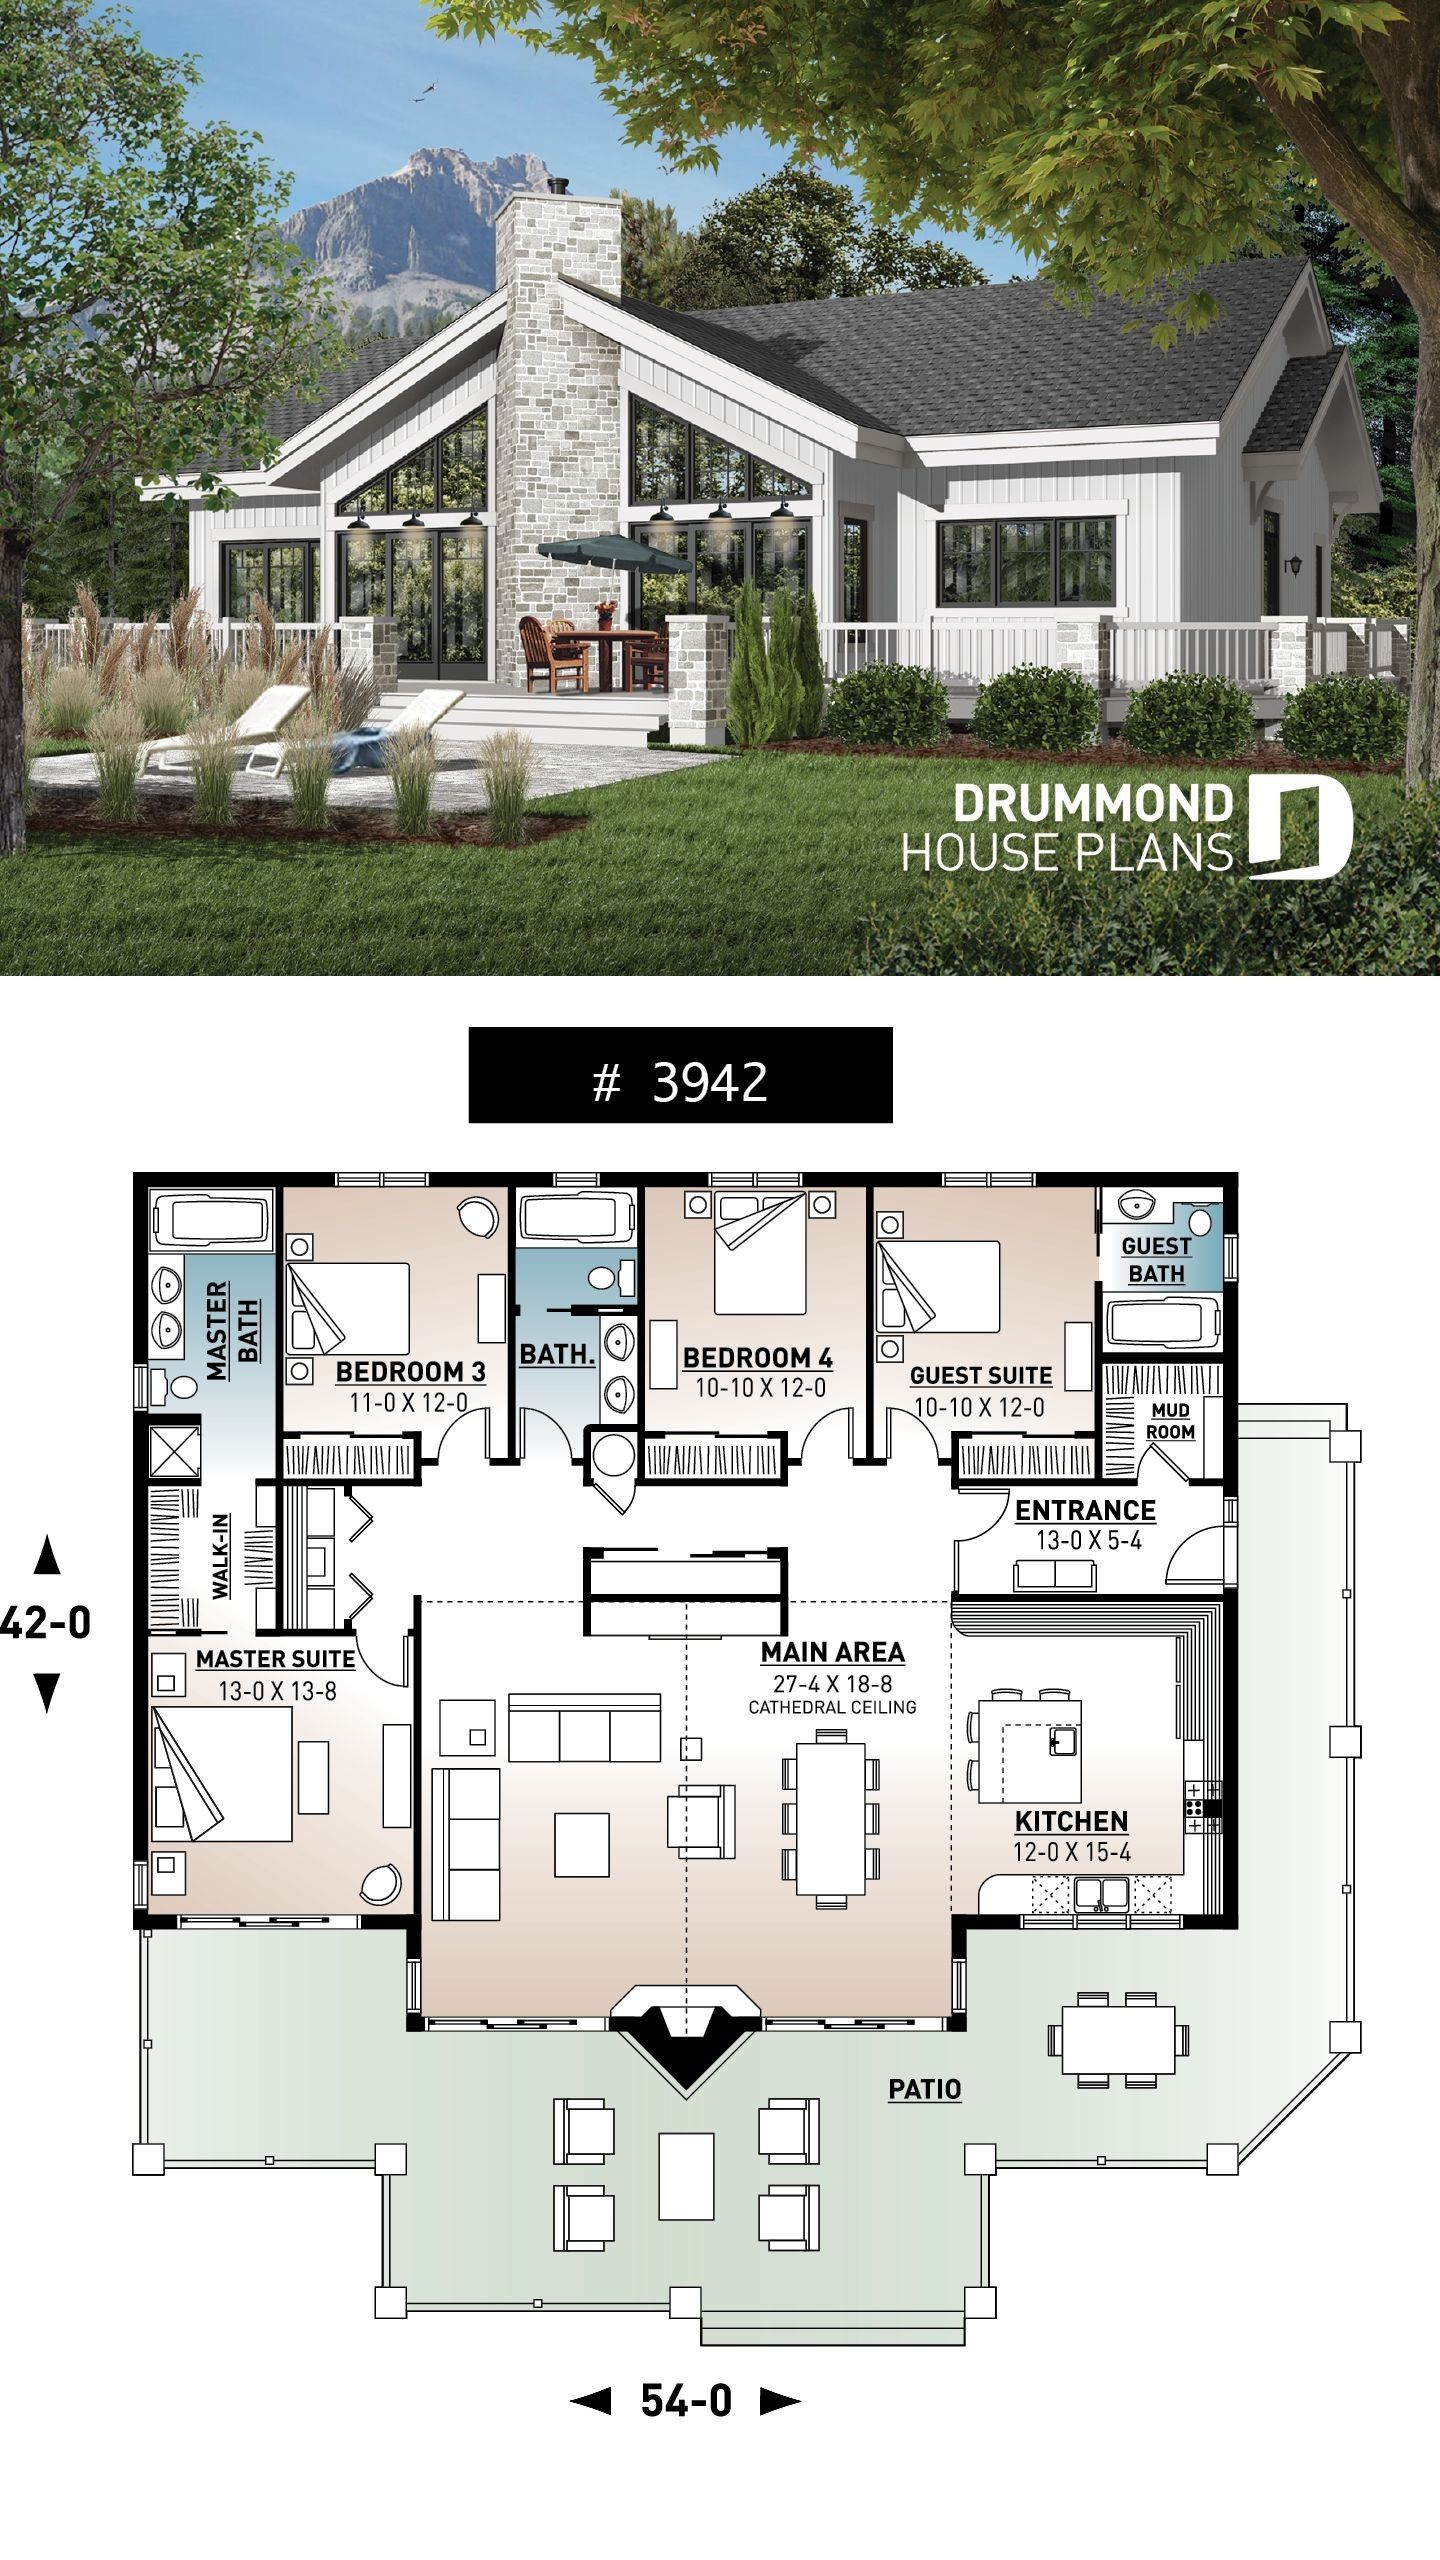 Cathedral Ceiling 4 Bedrooms 3 Bathrooms 2 Master Suites Lake House Plans Sims House Plans House Plans Farmhouse